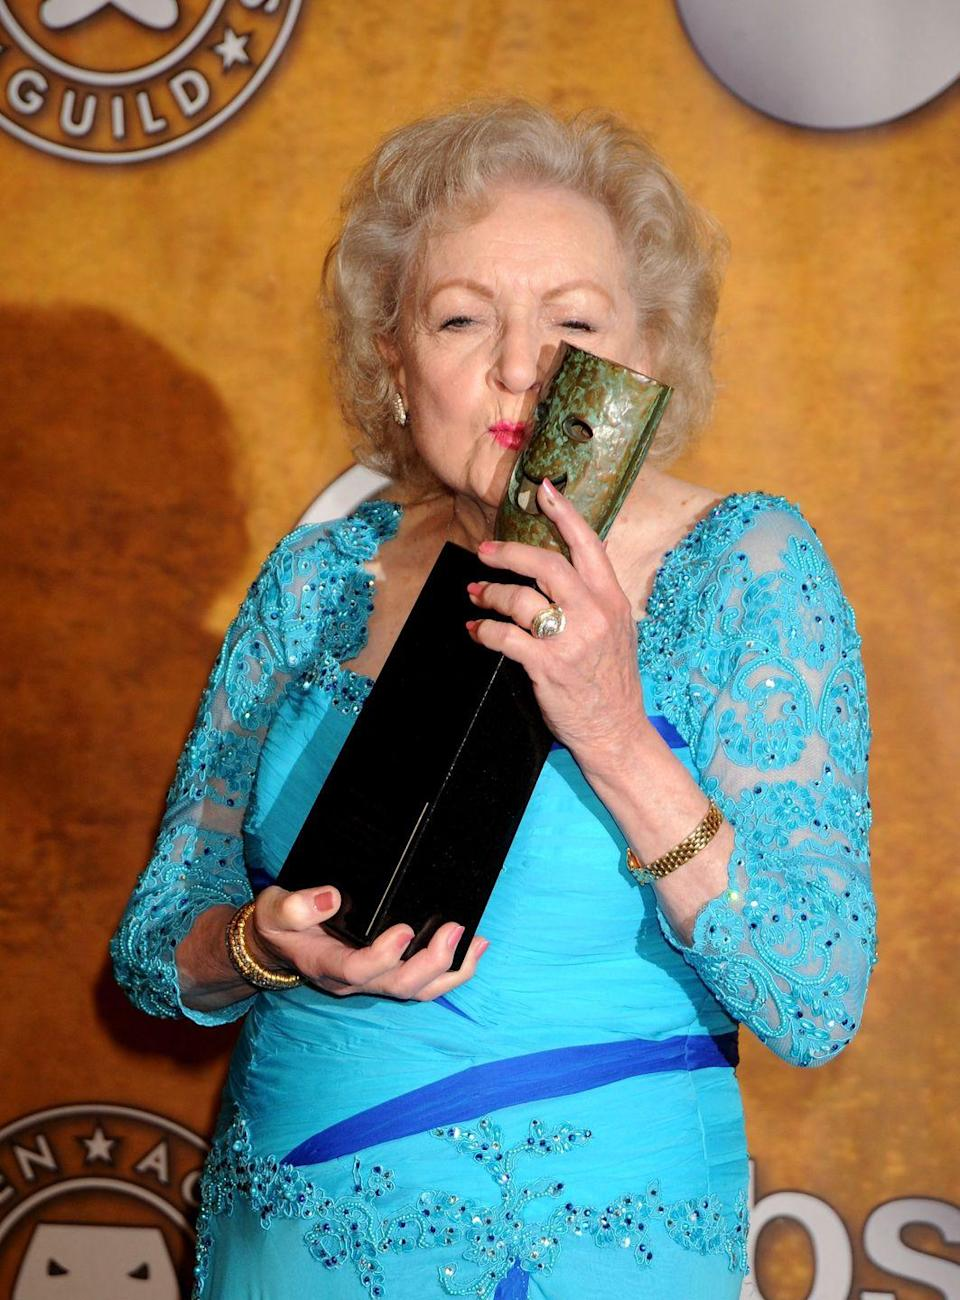 <p>After years in television, Betty was recognized by the Screen Actors Guild with a Lifetime Achievement Award in 2010. The actress was presented the award by her <em>The Proposal </em>costar, Sandra Bullock. <br></p>